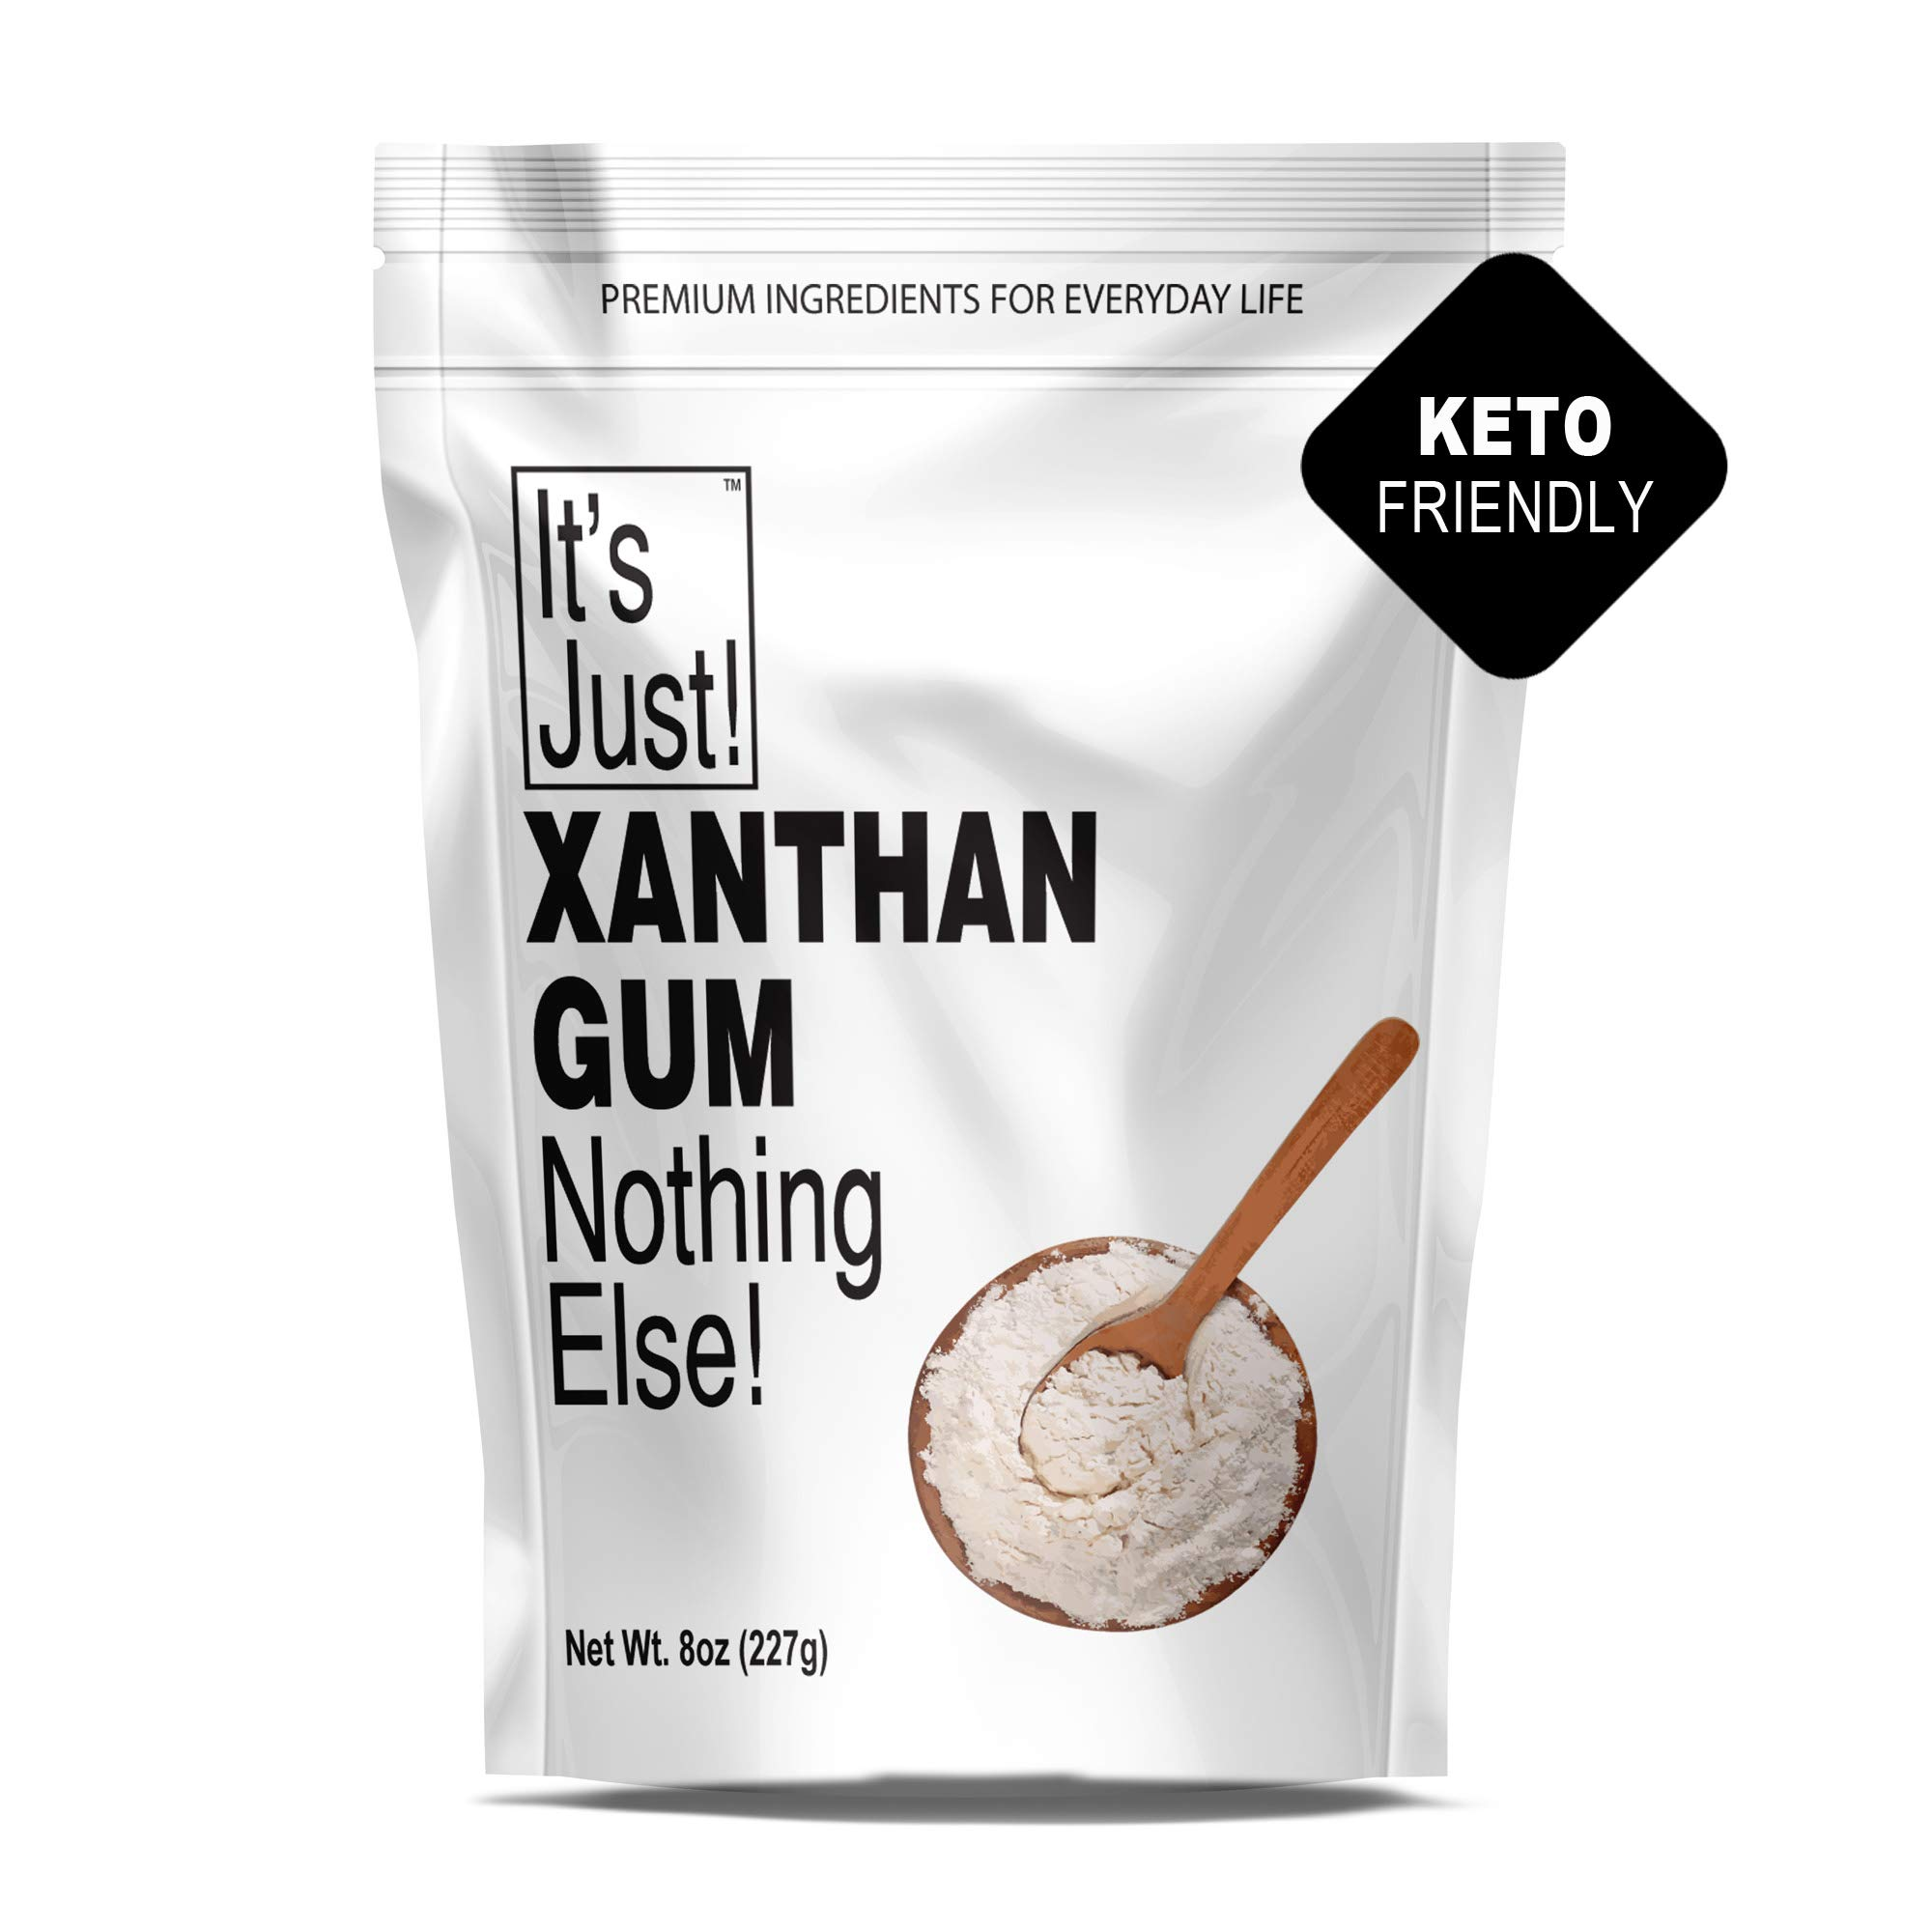 It's Just - Xanthan Gum, 8oz, Keto Baking, Non-GMO, Thickener for Sauces, Soups, Dressings, Packaging in USA